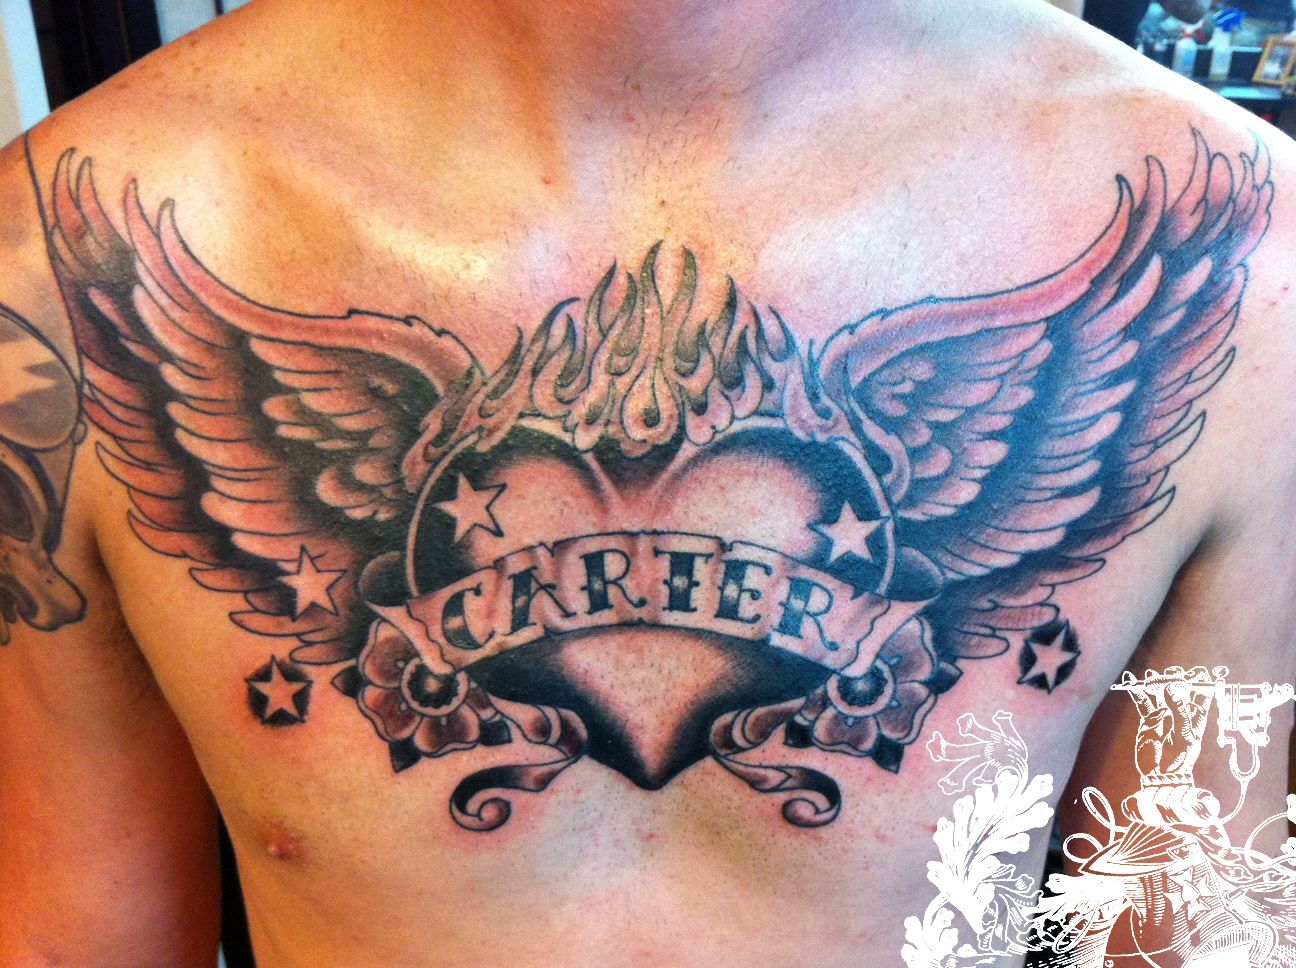 Open Heart Chest Tattoo Angel Chest Tattoo Images Amp Designs Chest Tattoo Images Chest Tattoo Tattoo Images